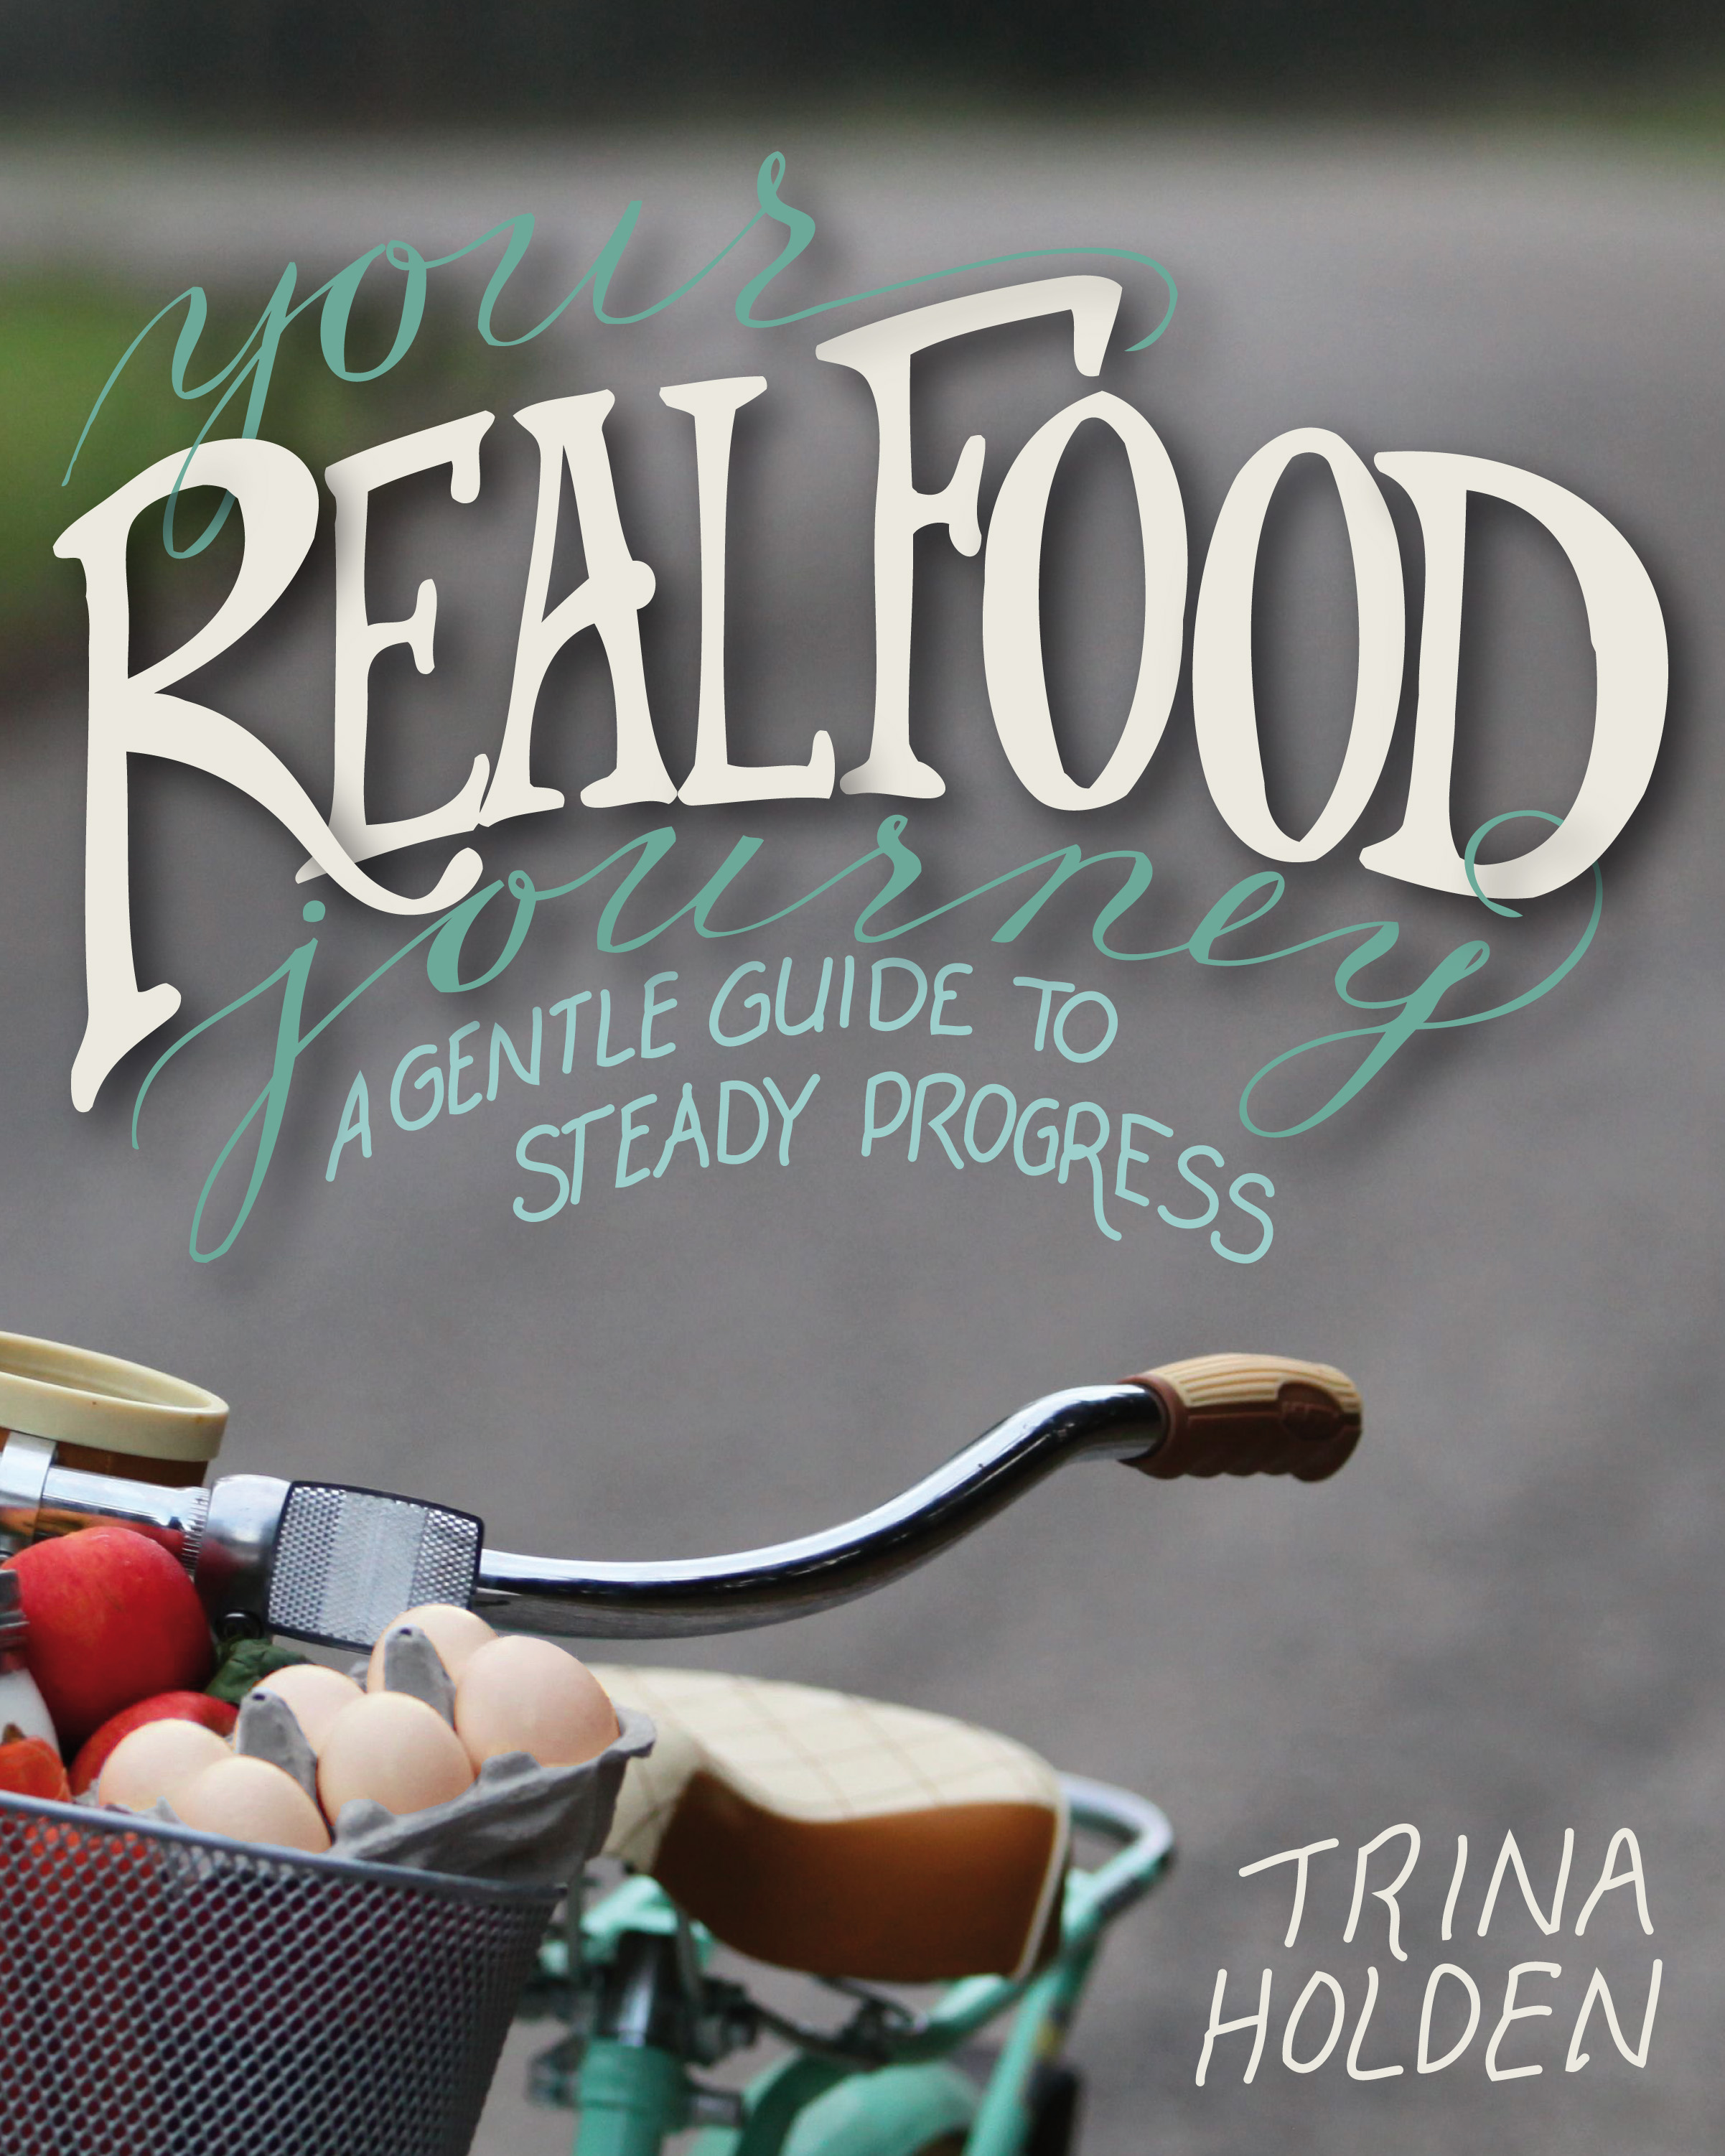 one of the best resources to gradually add more real food into your lifestyle